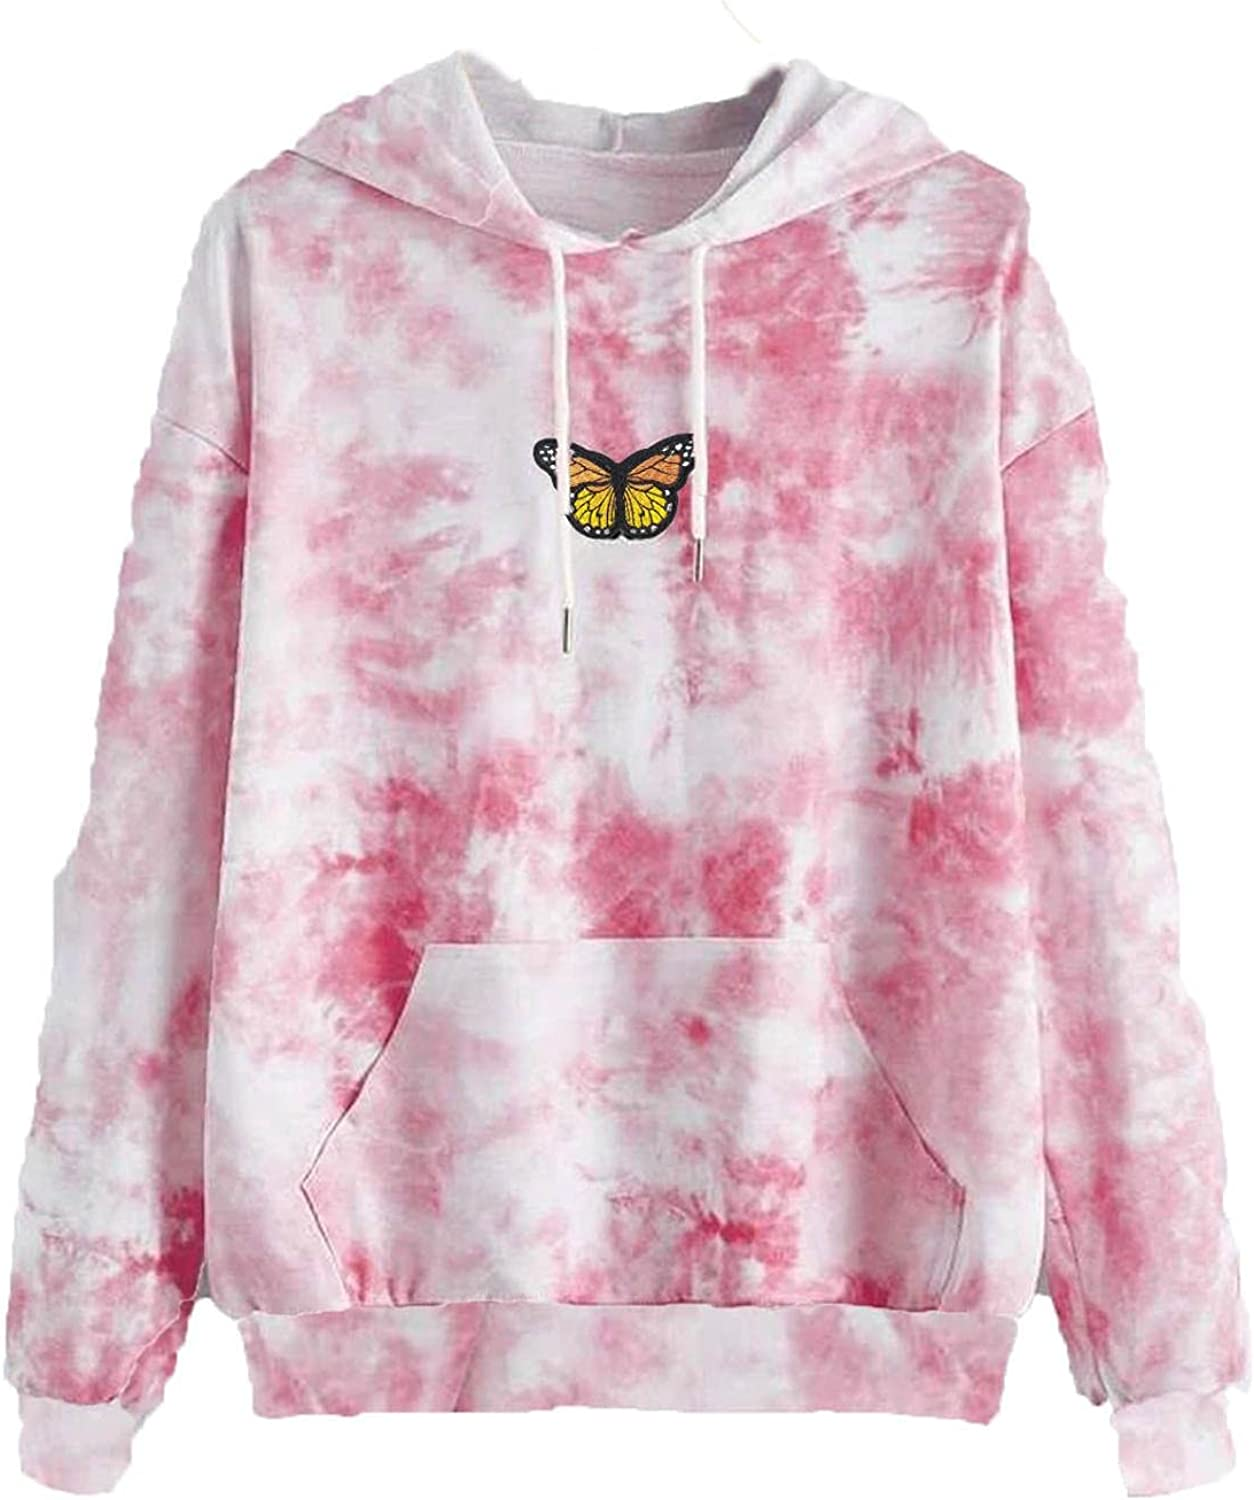 callcarl Cute Hoodies for Women Pullover Tie Dye Graphic Hooded